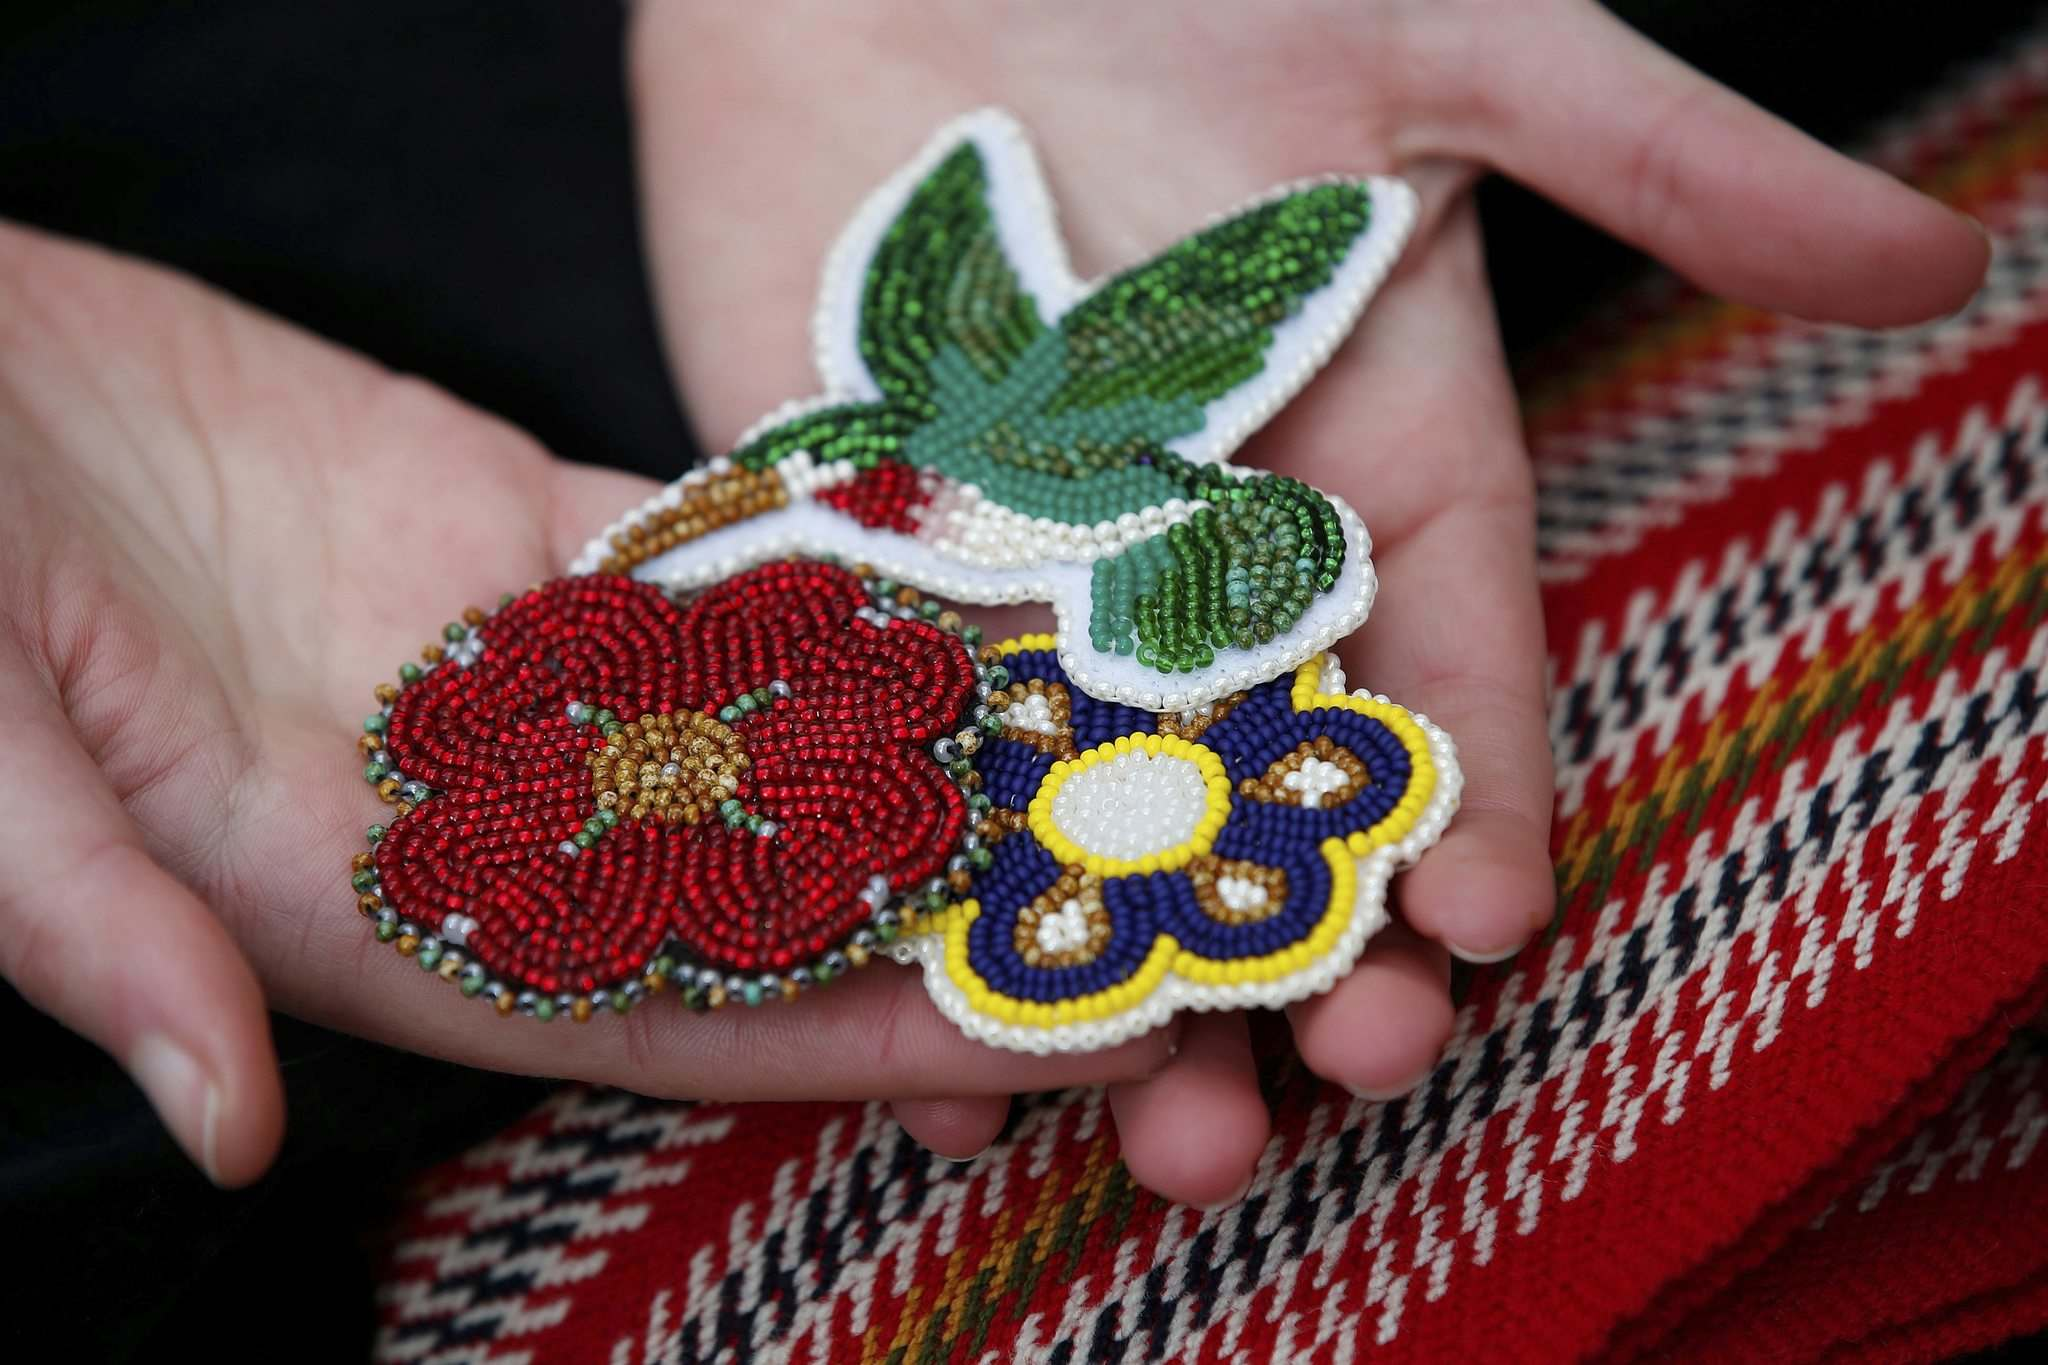 Copps makes beadwork patches for family and friends. (John Woods / Winnipeg Free Press)